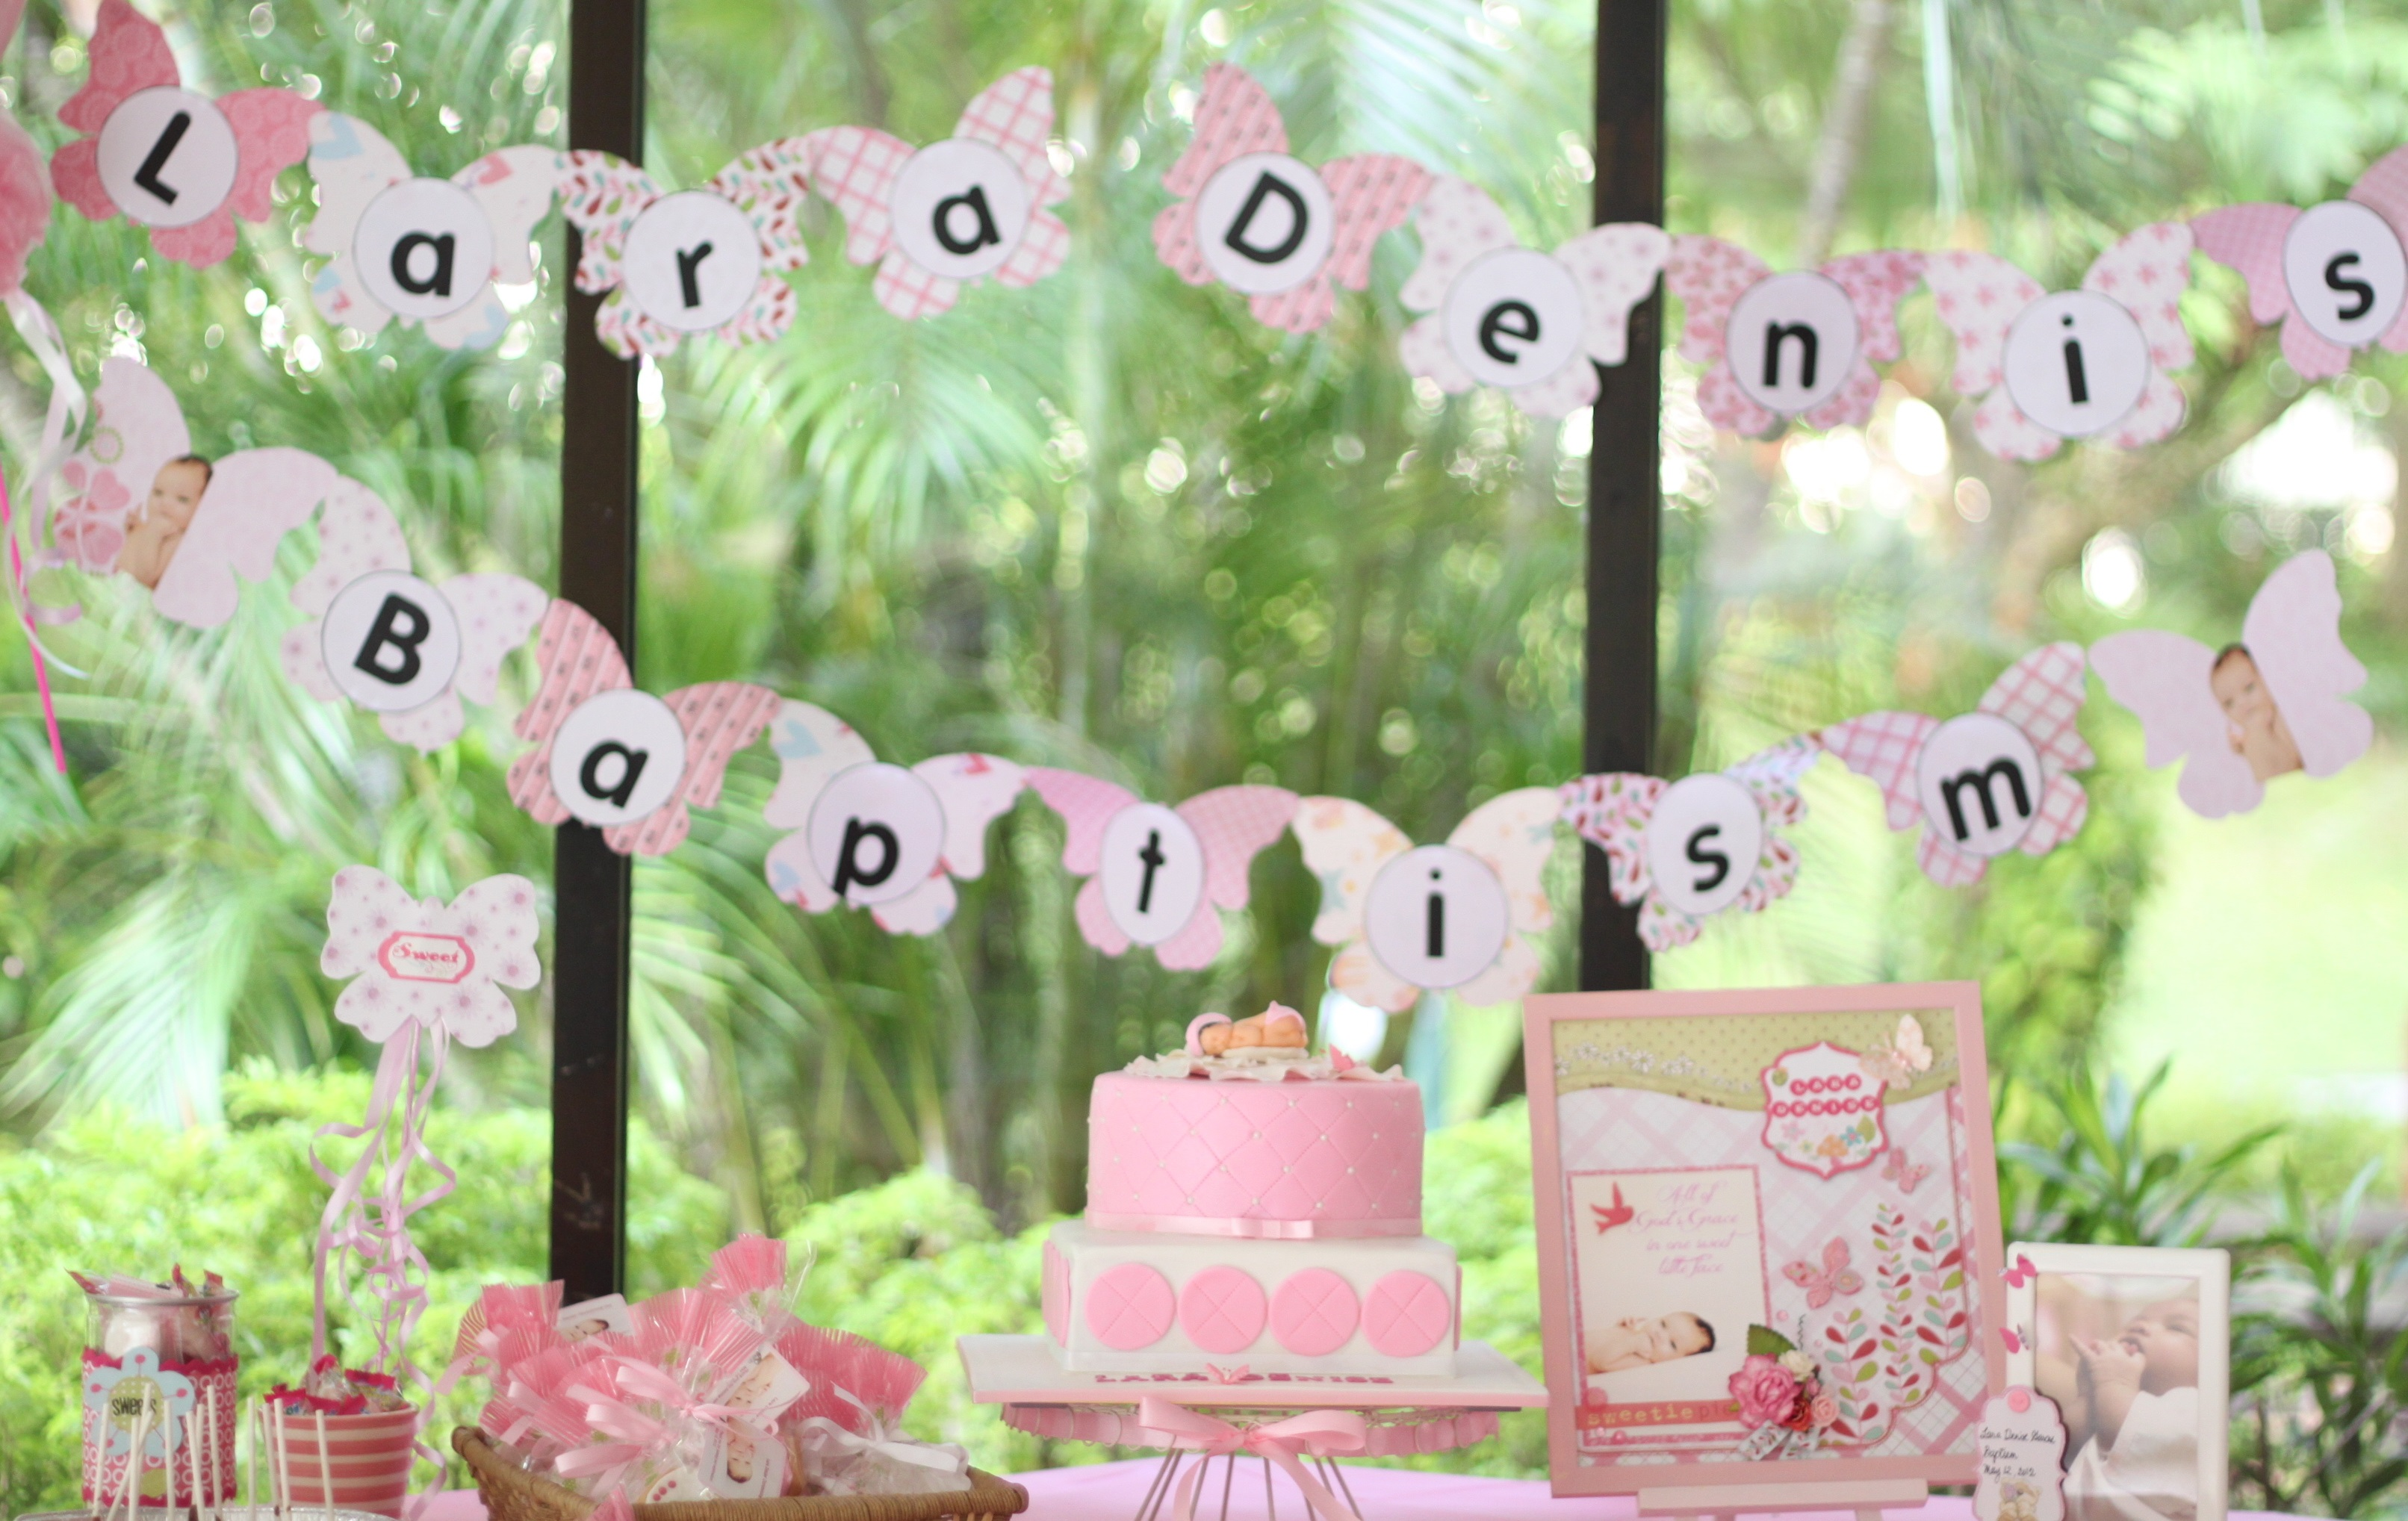 http://blog.boutique-magique.fr/wp-content/themes/BlogBM-Theme/images/christening_baptism_dessert_table.jpg